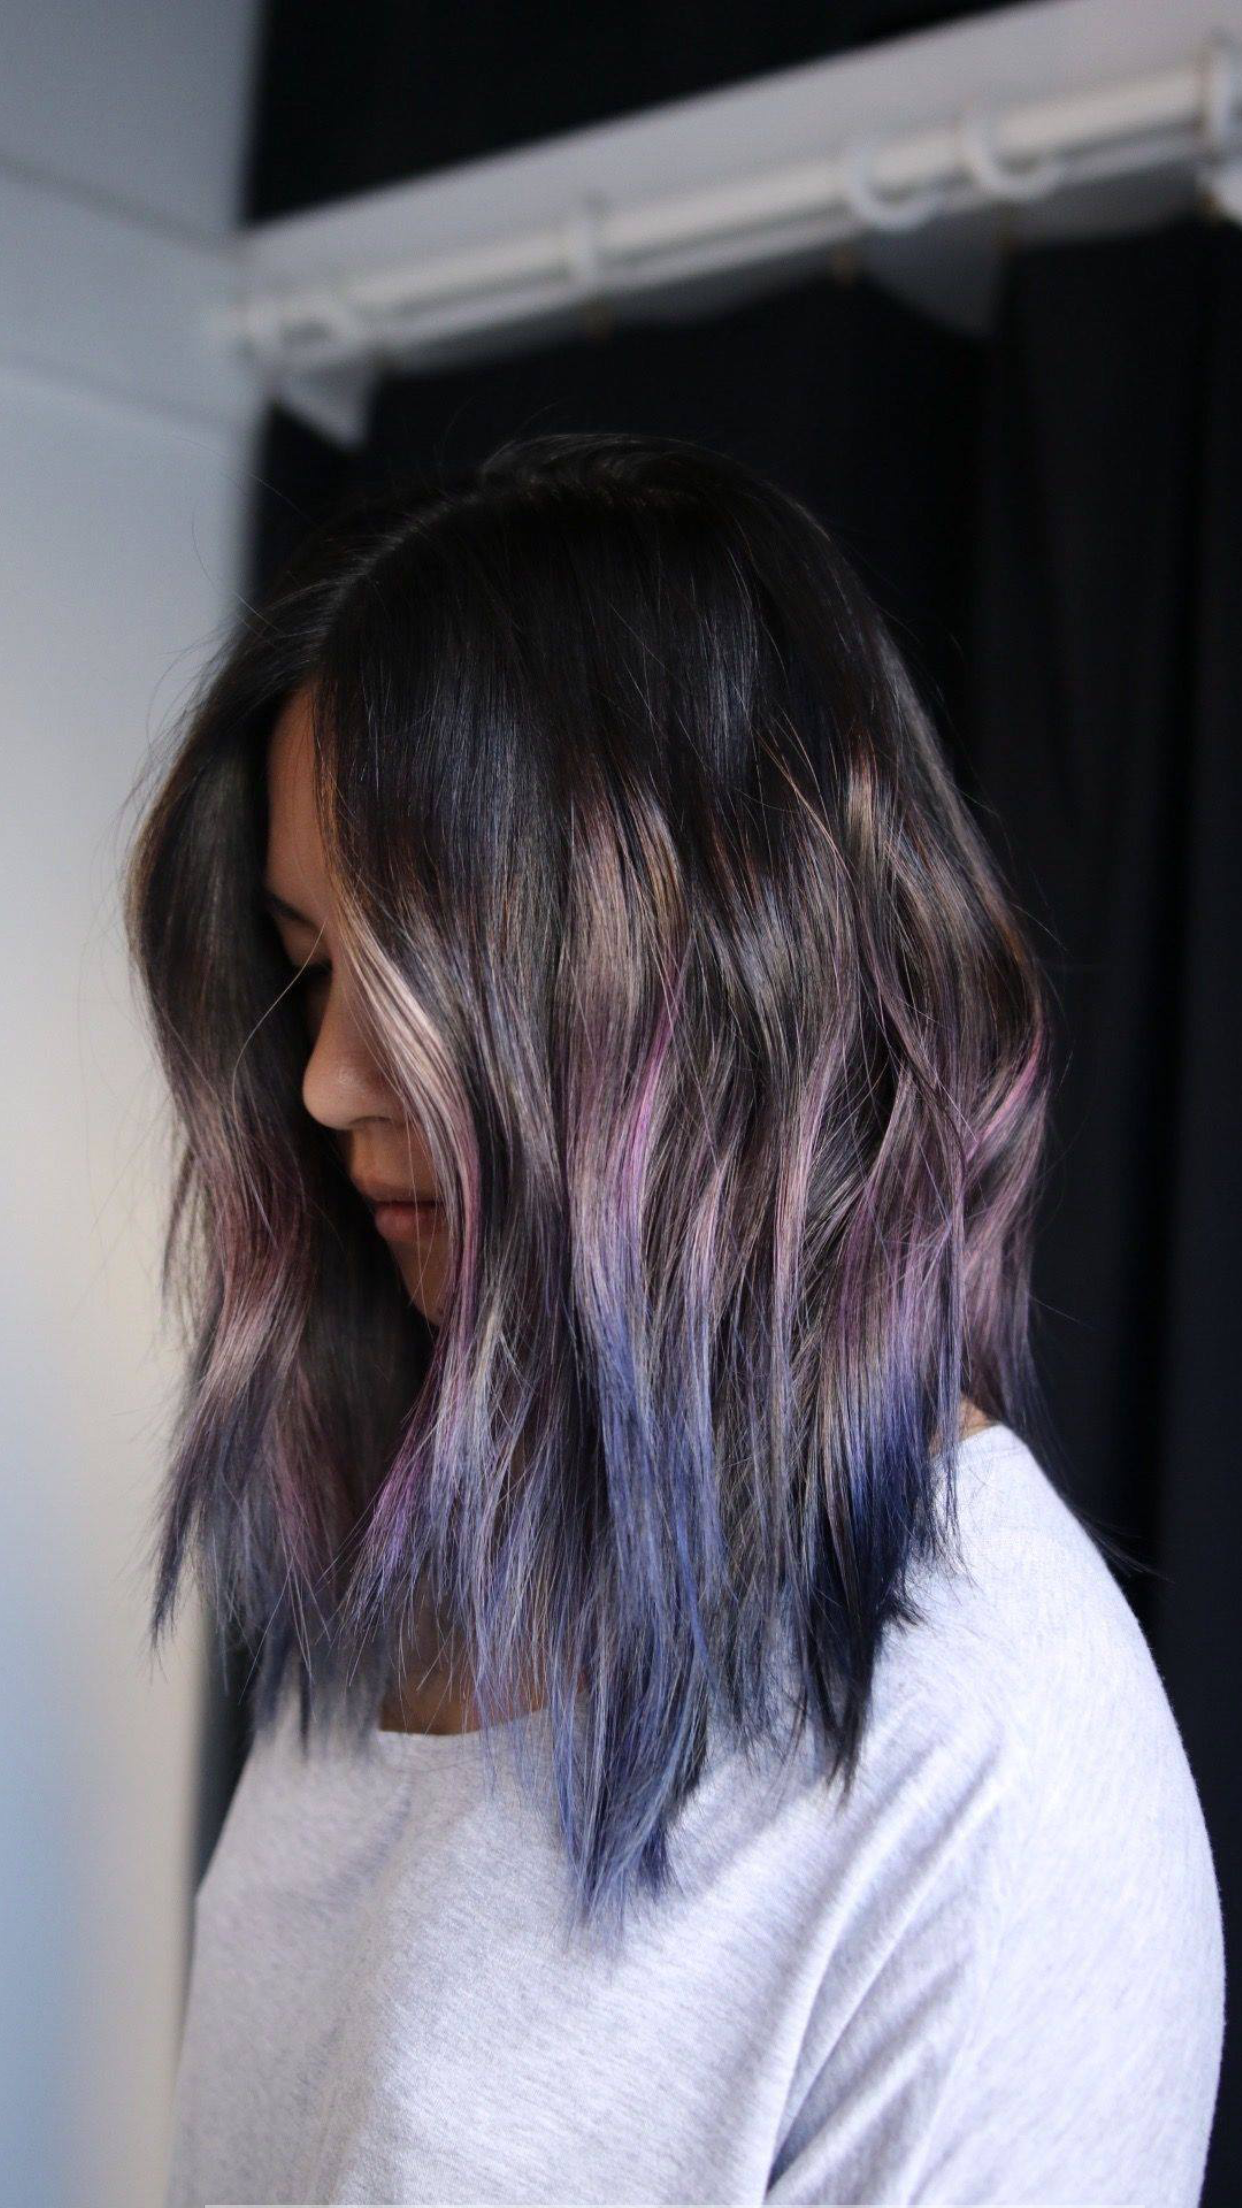 Pin By Rebecca Kwee On Hair In 2020 Hair Color Trends Hair Styles Balayage Hair